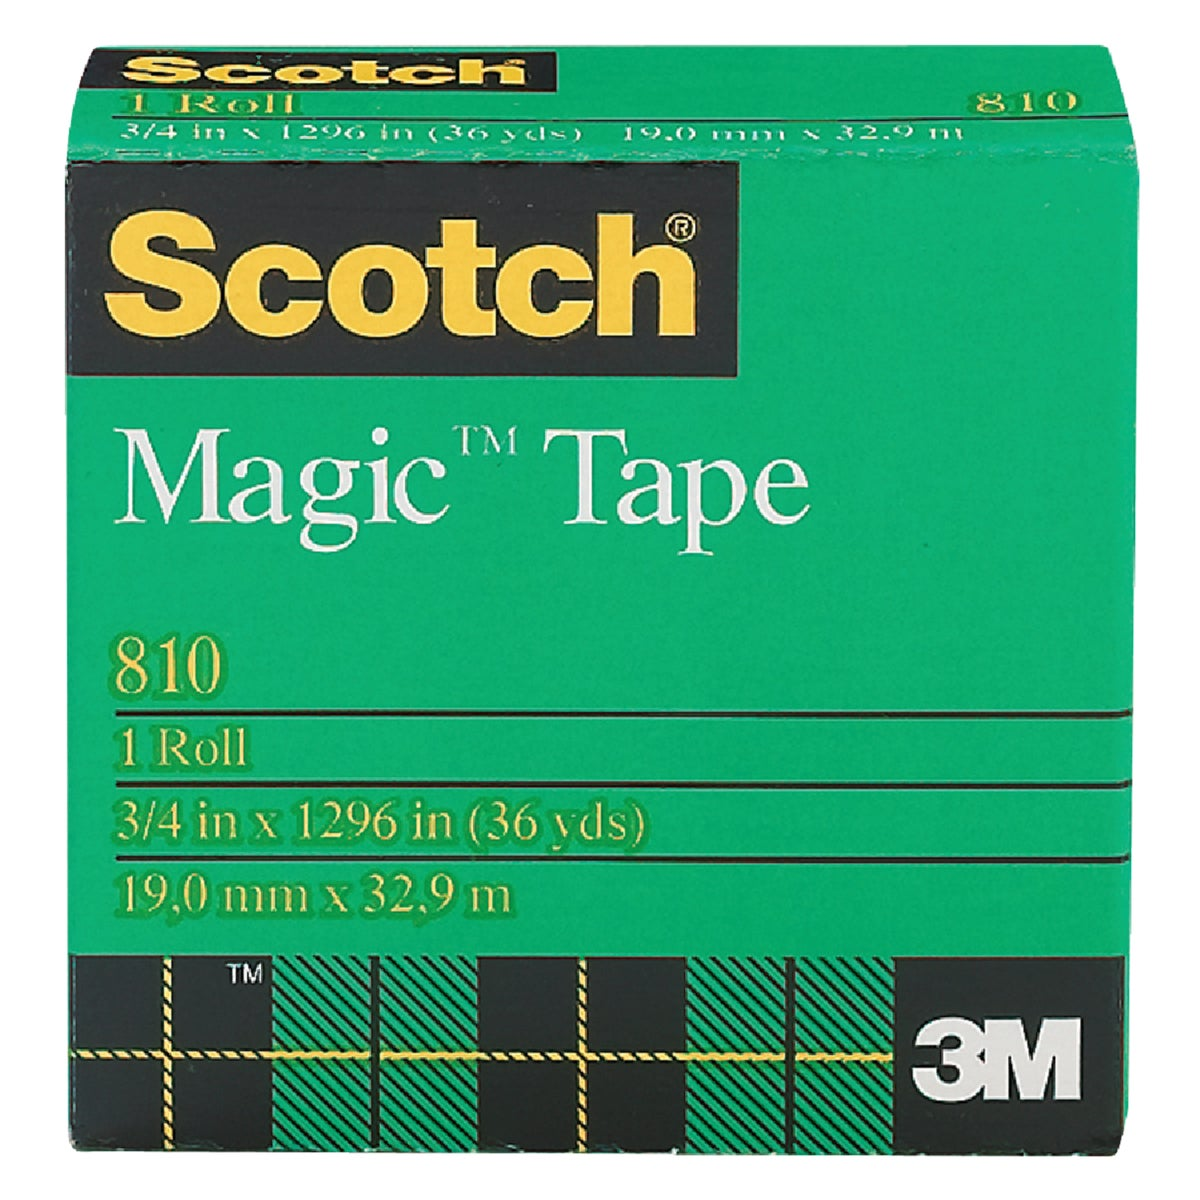 "3/4X1296"" MAGIC TAPE - 810 by 3m Co"